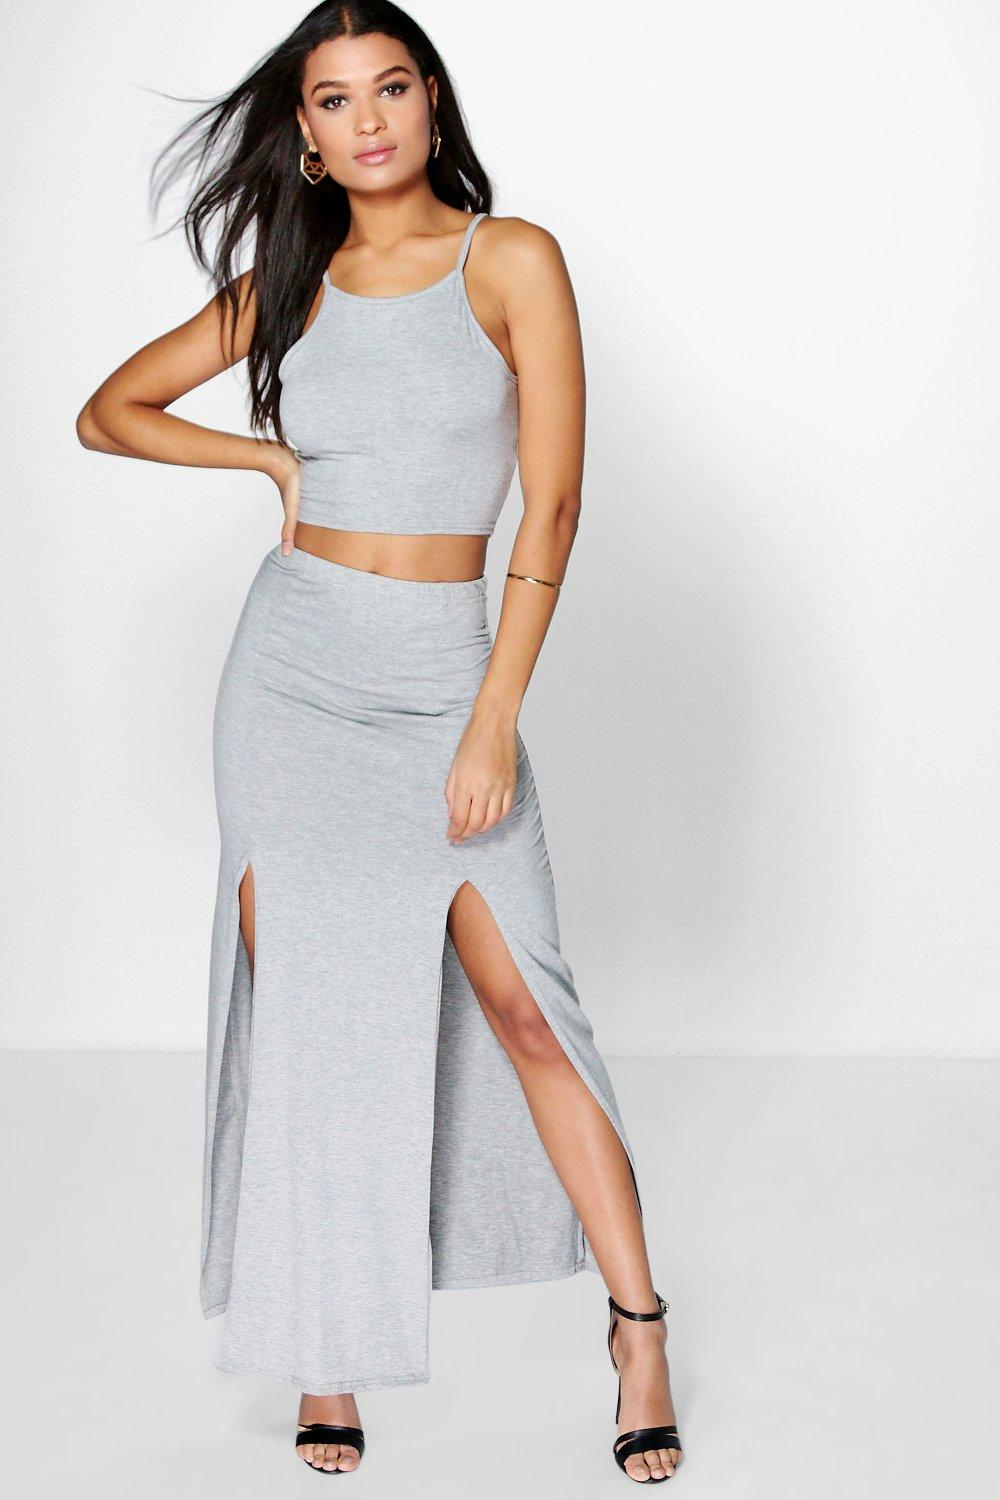 Ana Square Crop Top & Maxi Skirt Co-Ord Set